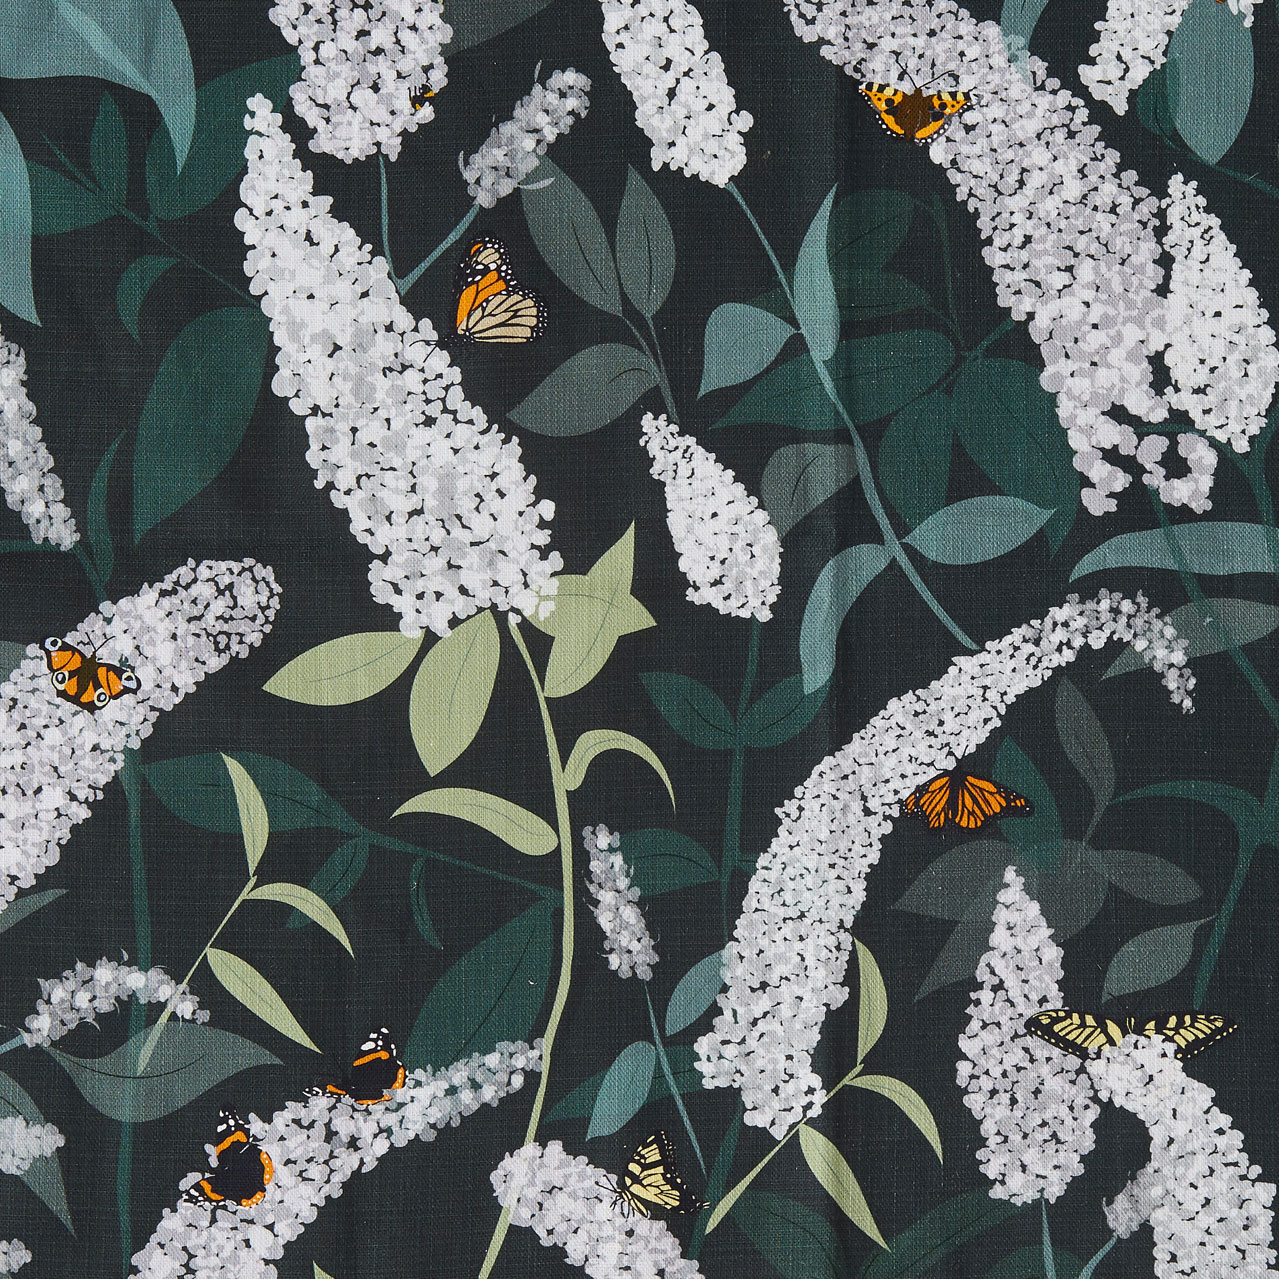 Green butterfly fabric for upholstery - Bees and Buddleia - Lorna Syson